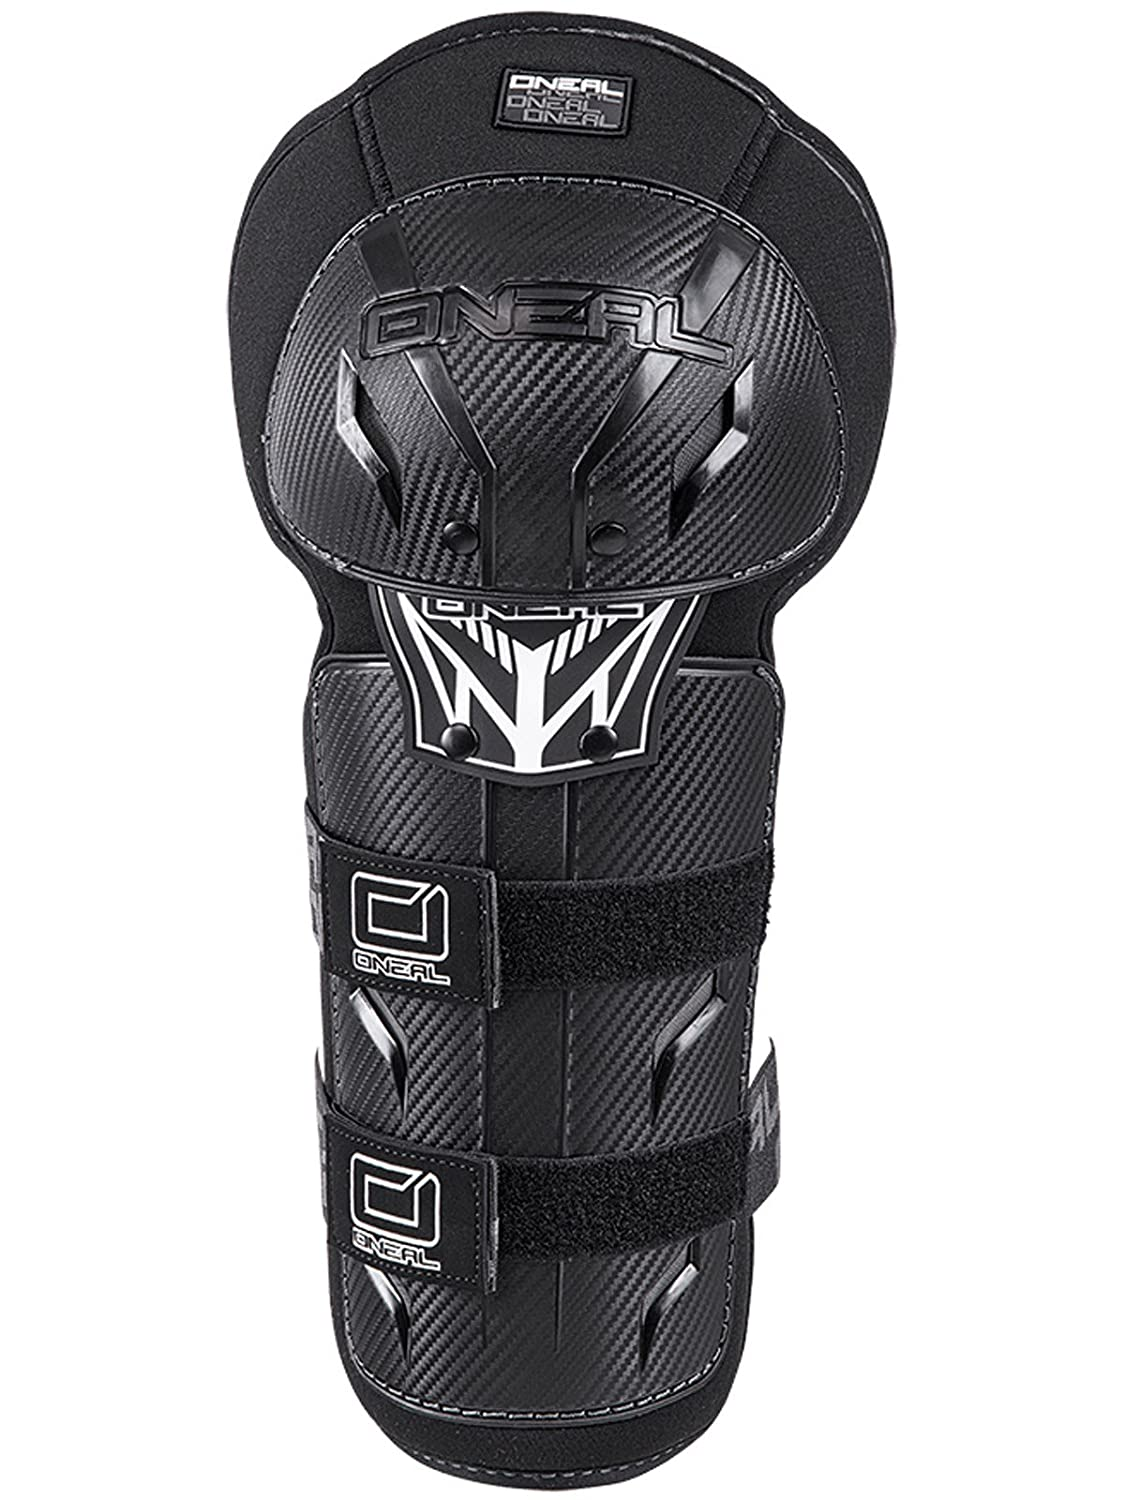 Oneal Pro III Carbon Look Youth Negro M Protecciones